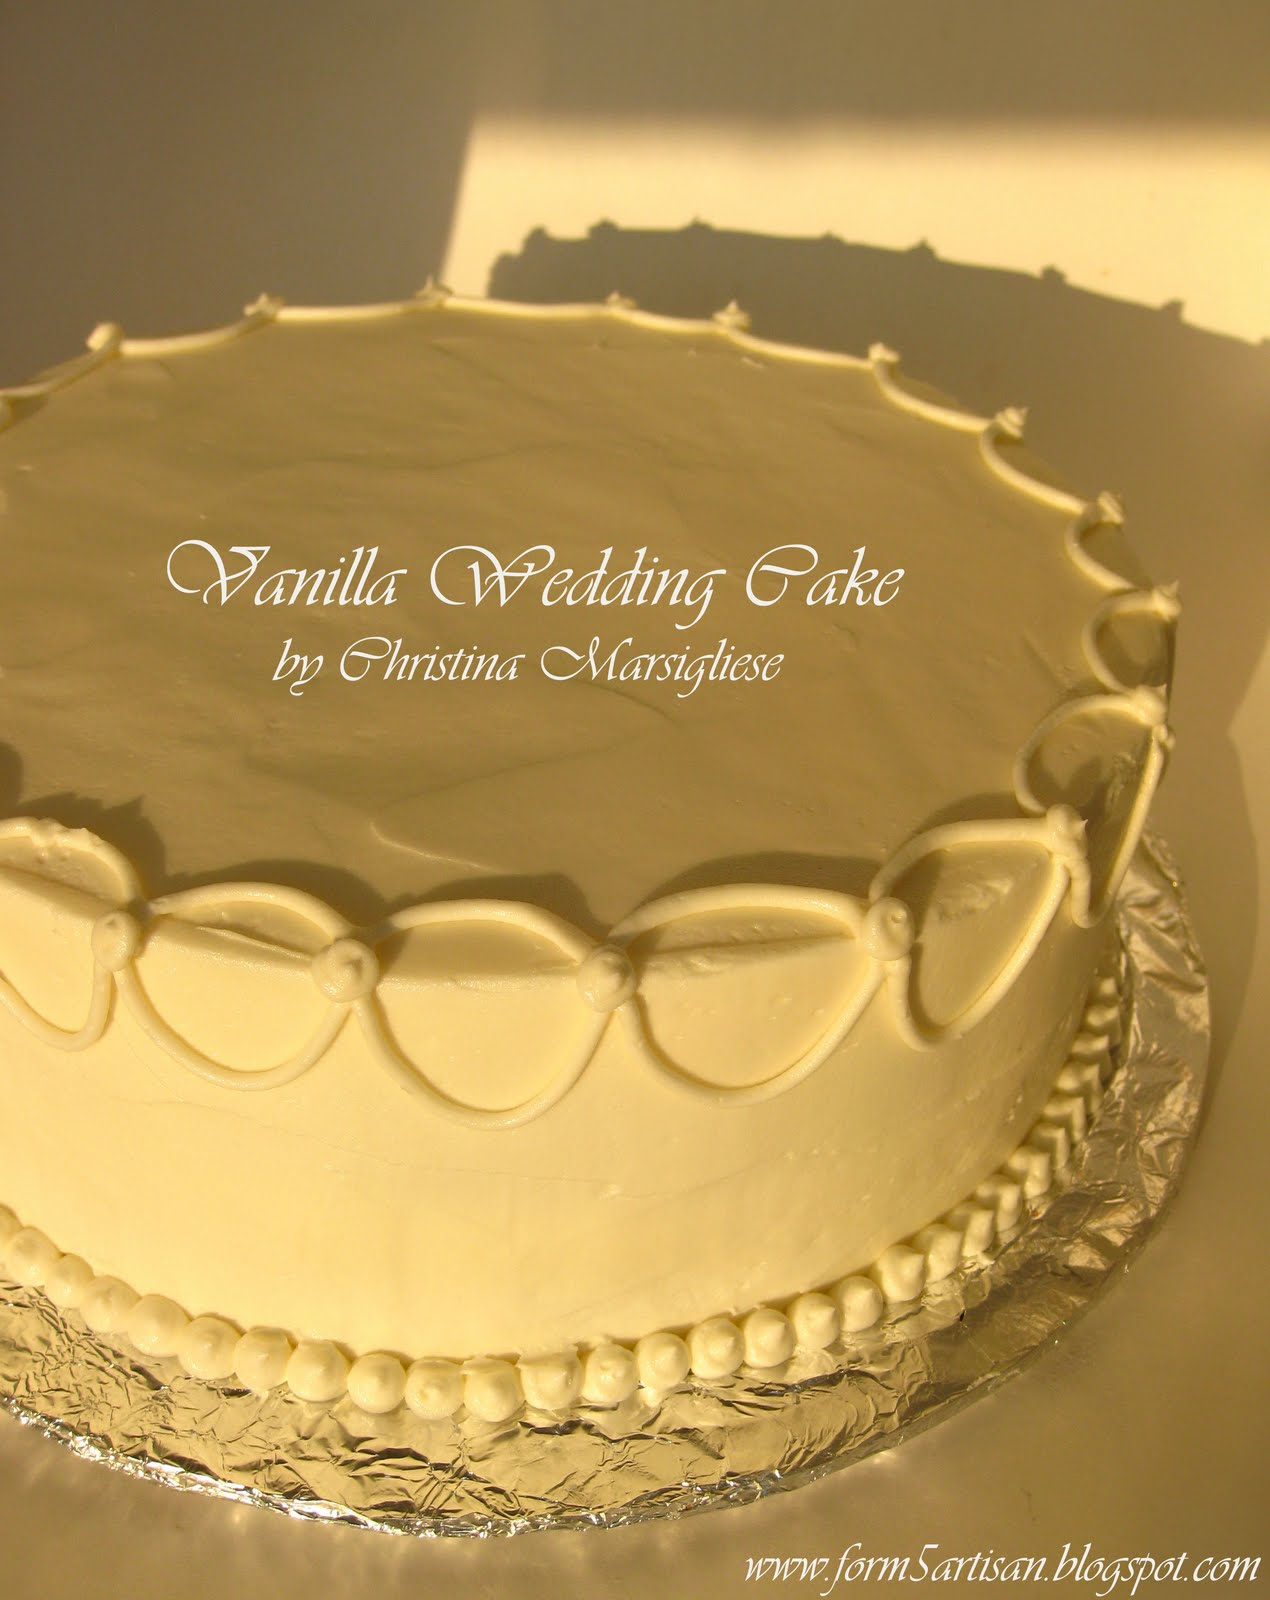 scientifically sweet showers of wedding wishes and a mini wedding